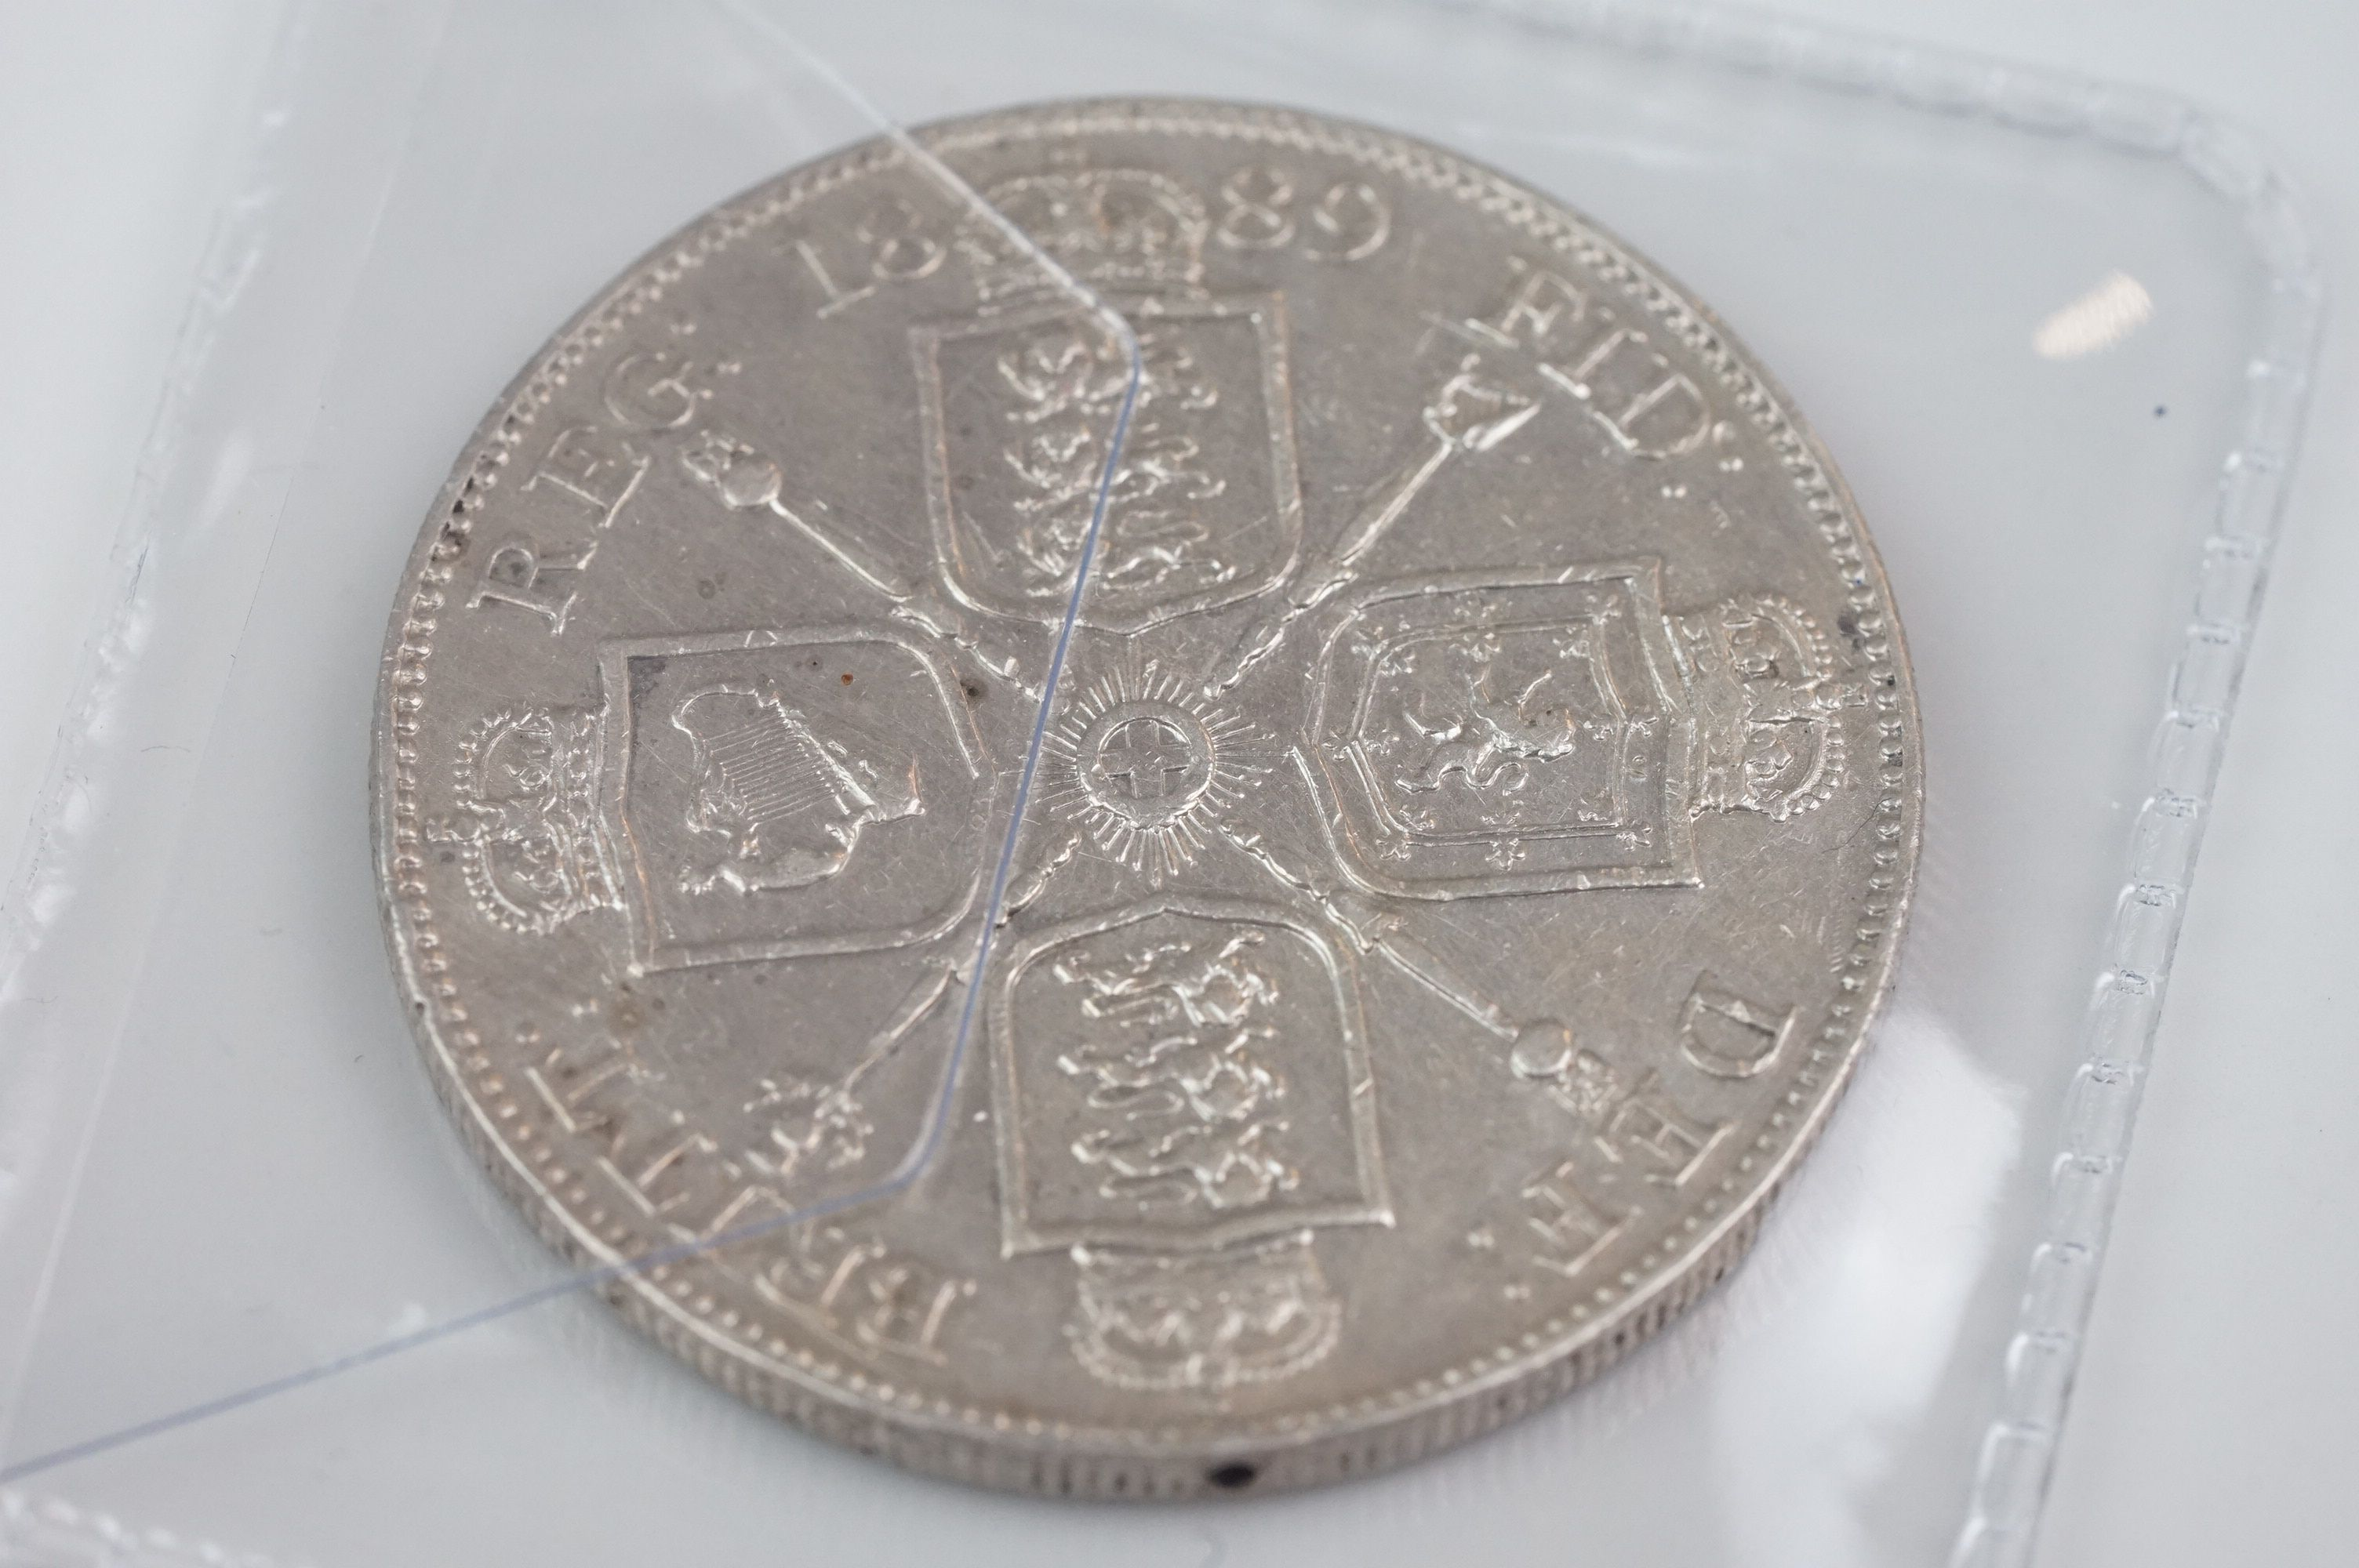 A collection of five Victorian silver coins to include two double florins, two florins and a - Image 8 of 11